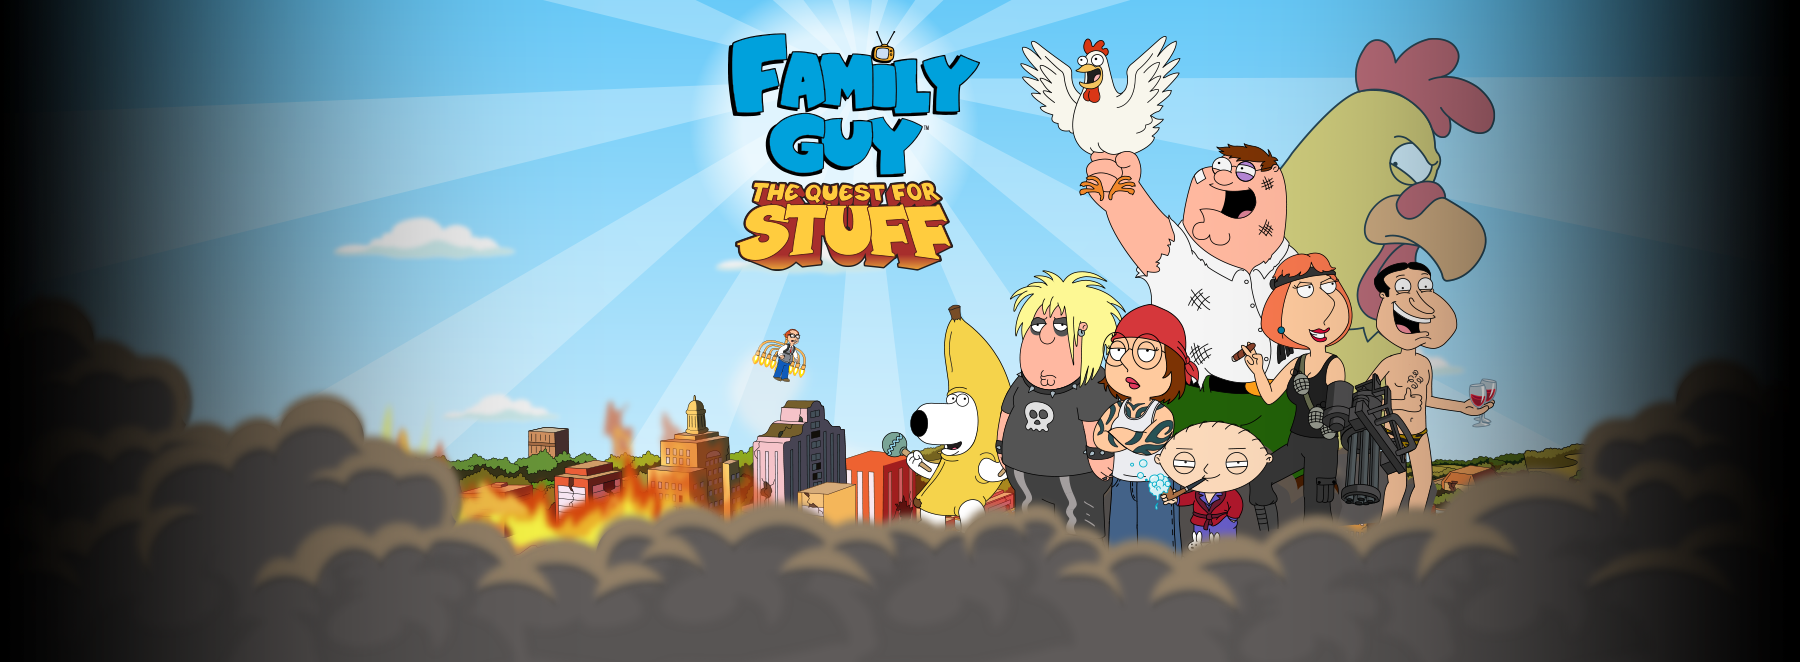 Family Guy The Quest for Stuff Releasing on iOS and